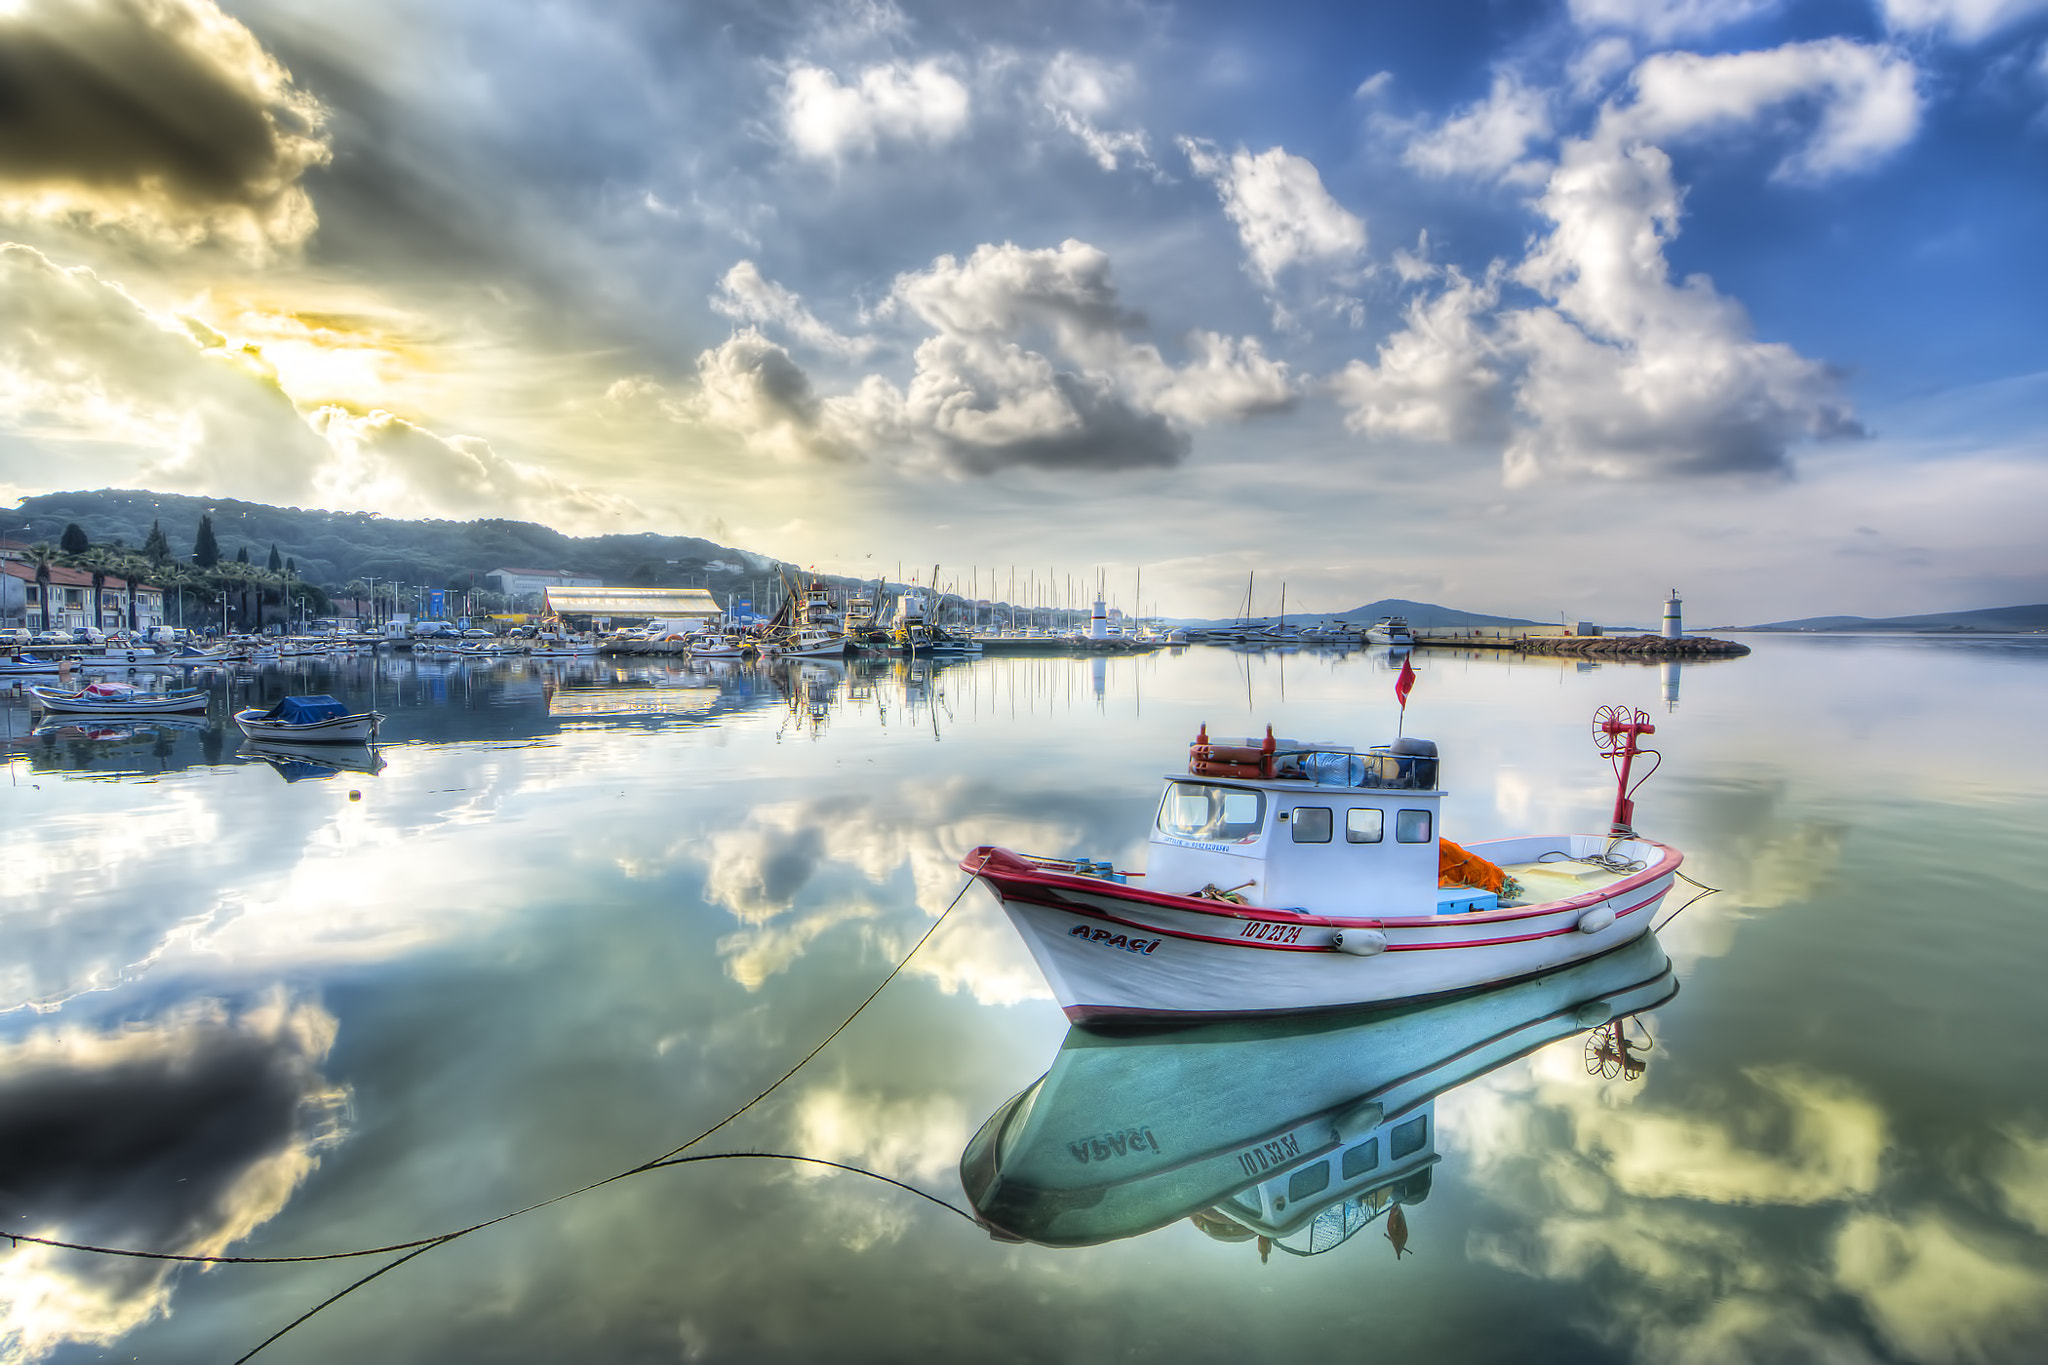 Photograph Ayvalik, by Hakki Dogan on 500px